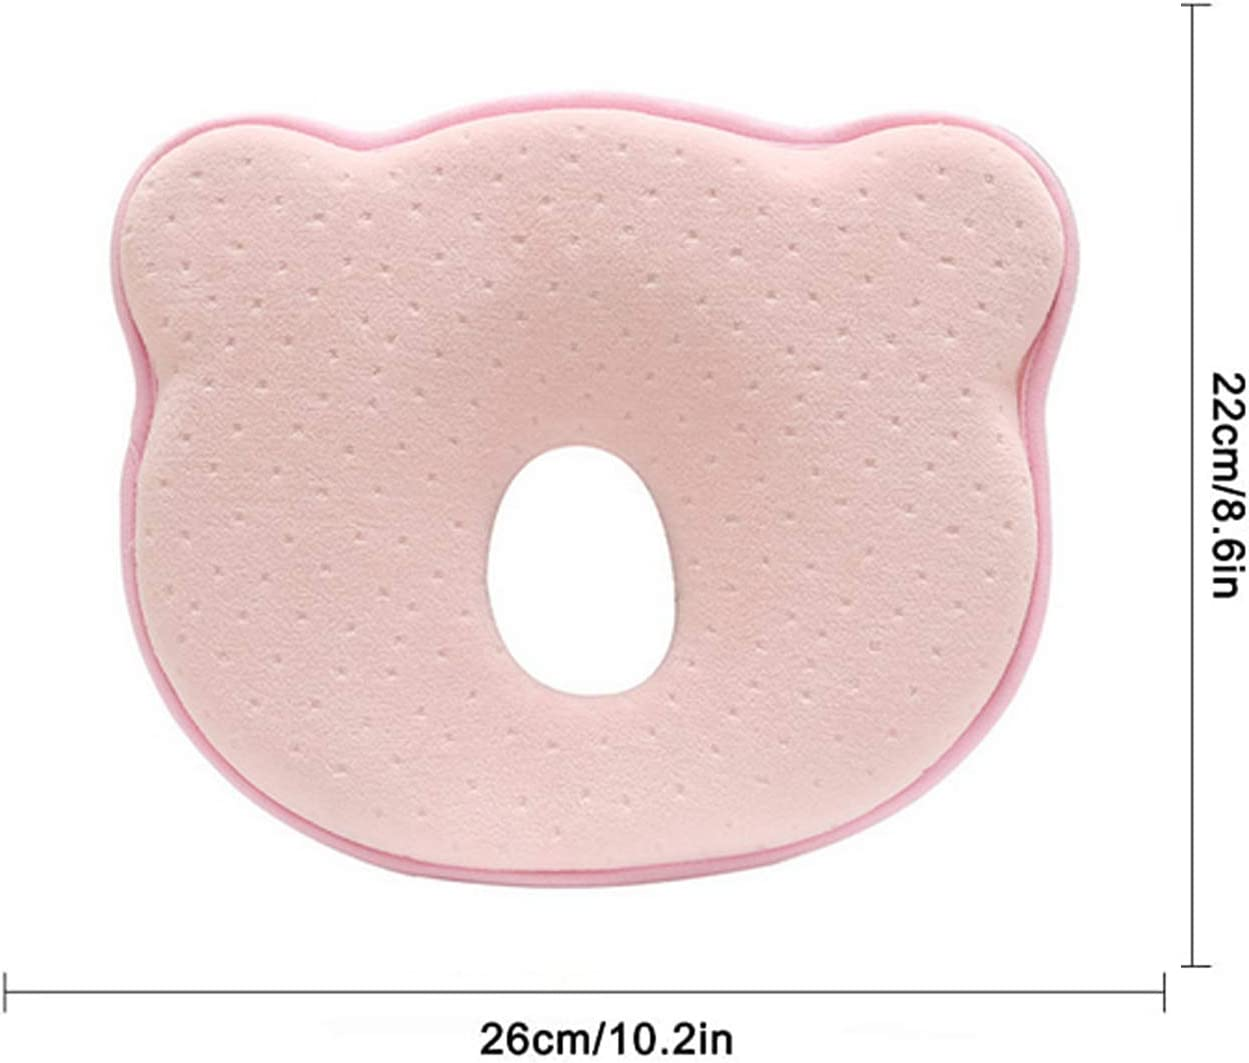 Baby Pillow Cute Bear Shape 3D Memory Foam Head and Neck Pillow Soft Against Flat Head Cushion Newborn Baby Head Shaping Pillow for The Prevention and Treatment